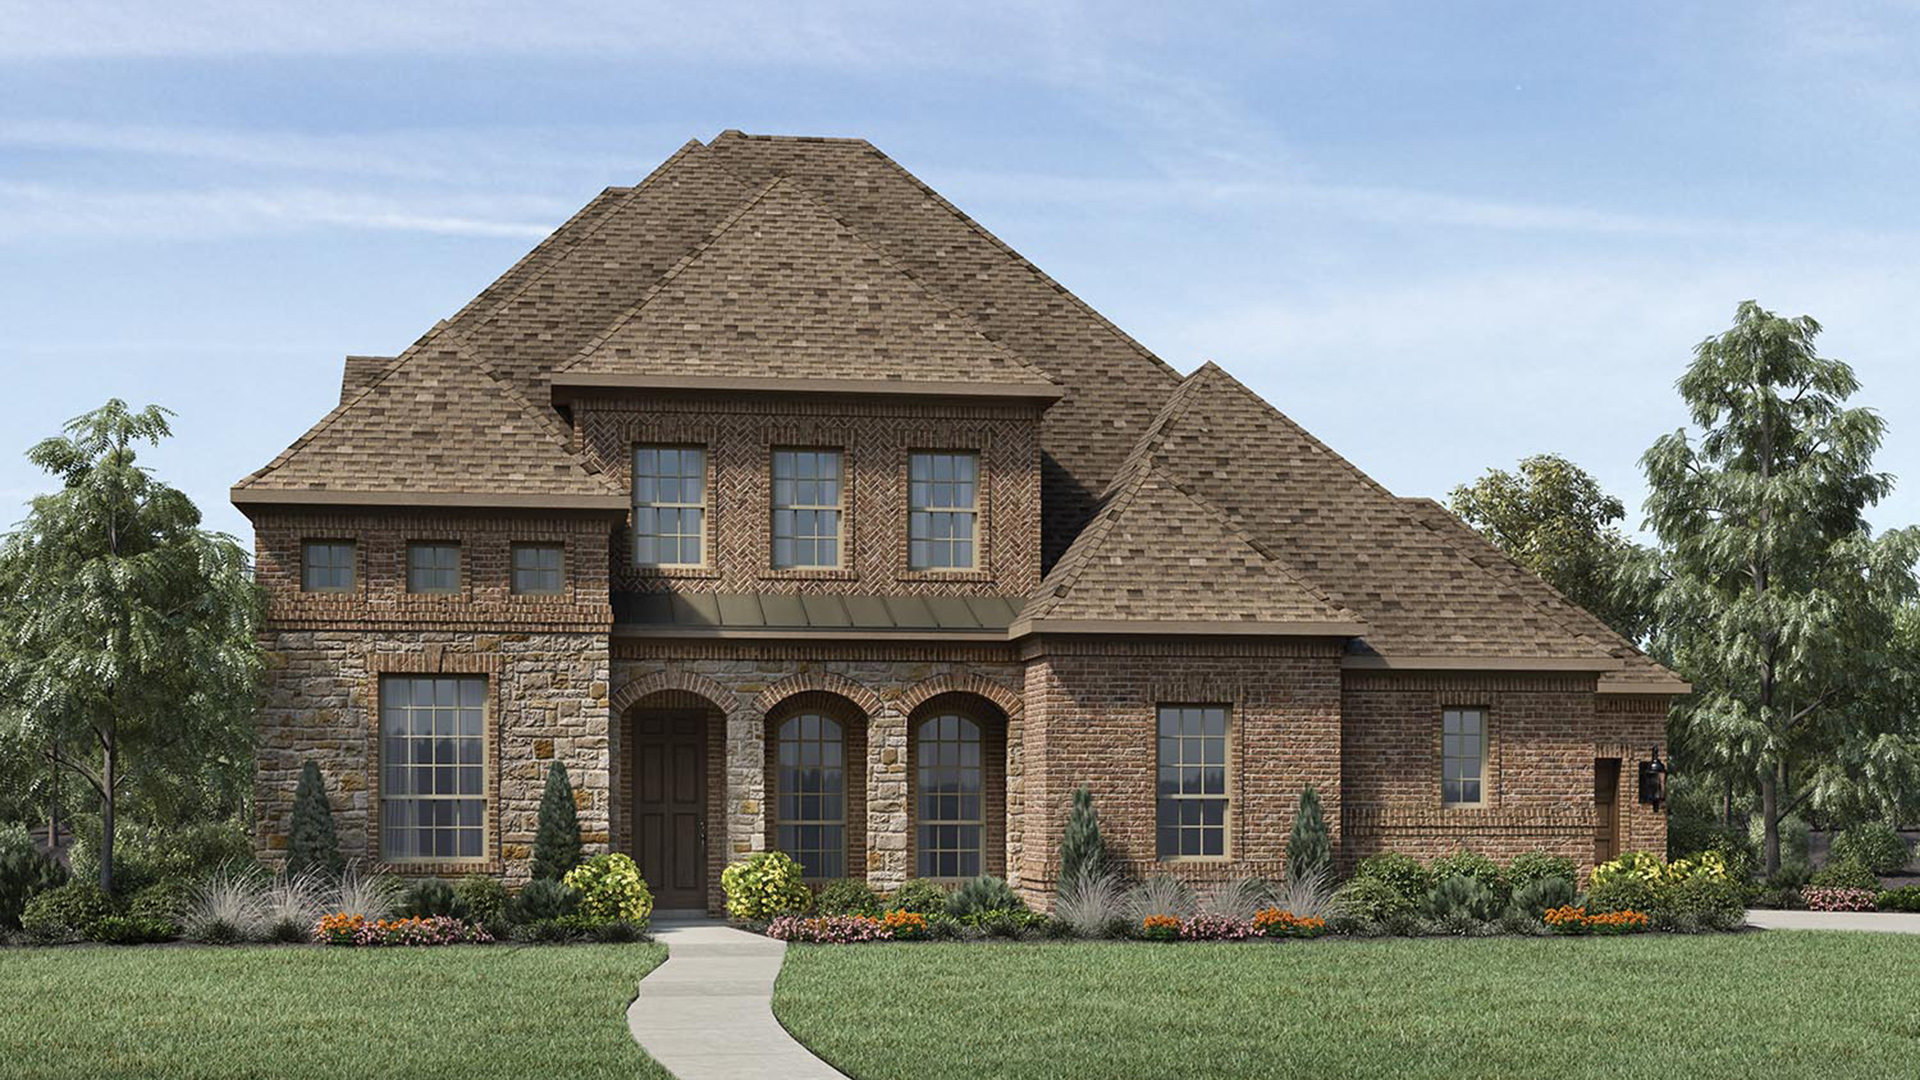 Flower Mound Tx New Homes For Sale Terracina At Flower Mound